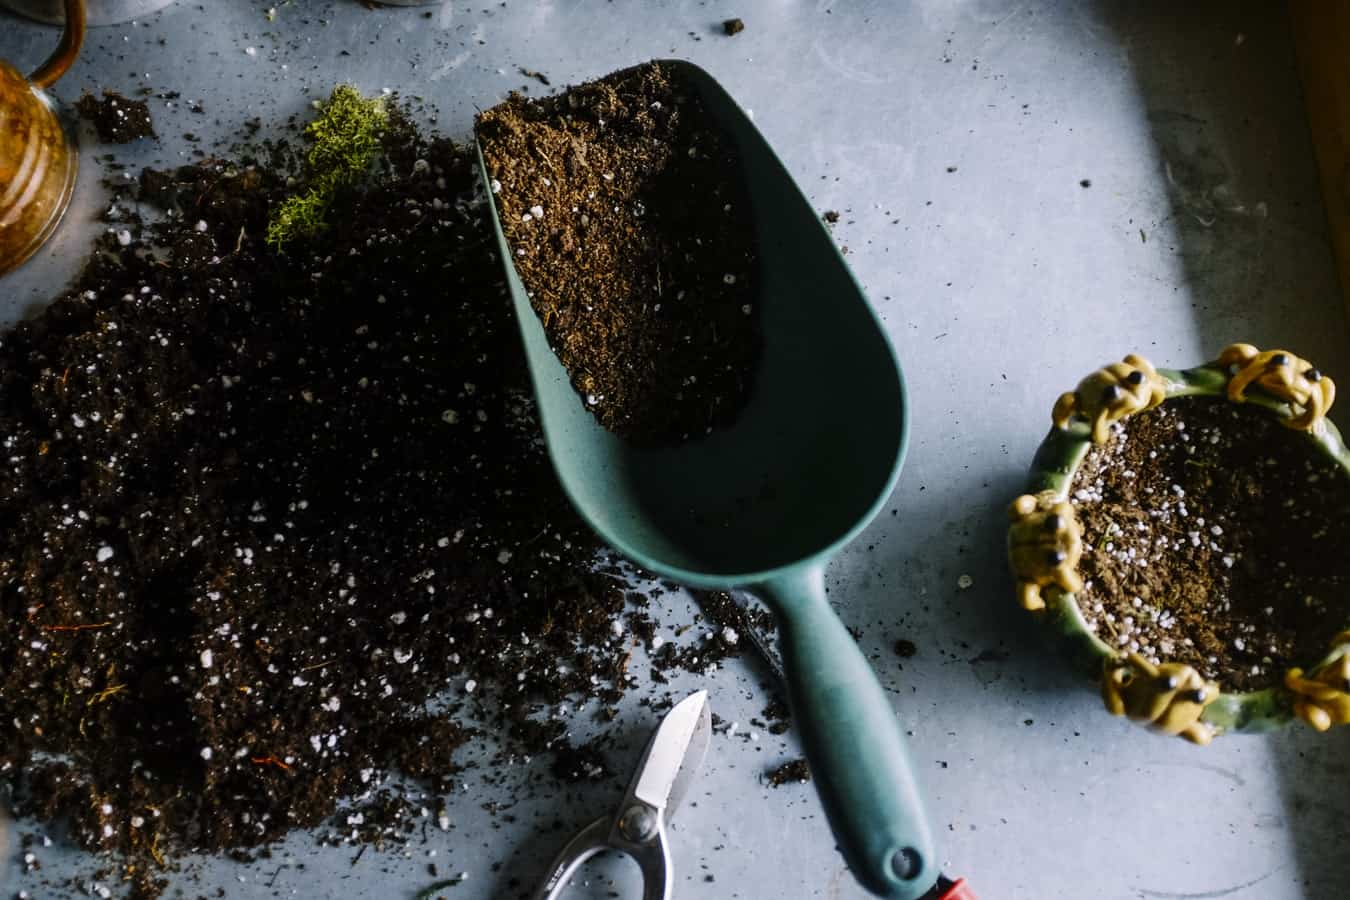 Basic Gardening Essentials: Garden Time Tools Must-Haves